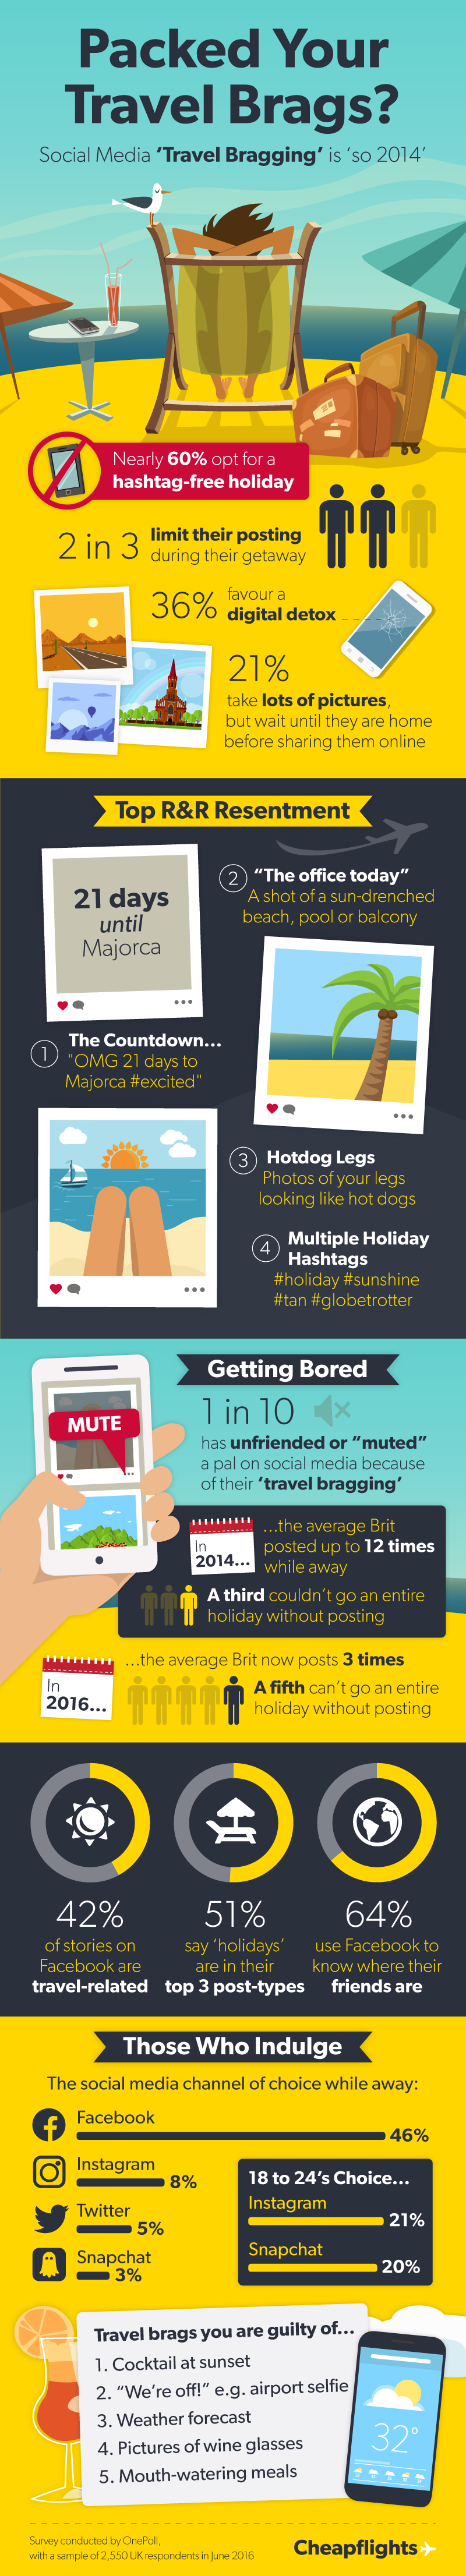 Brits travel bragging habits are changing 2